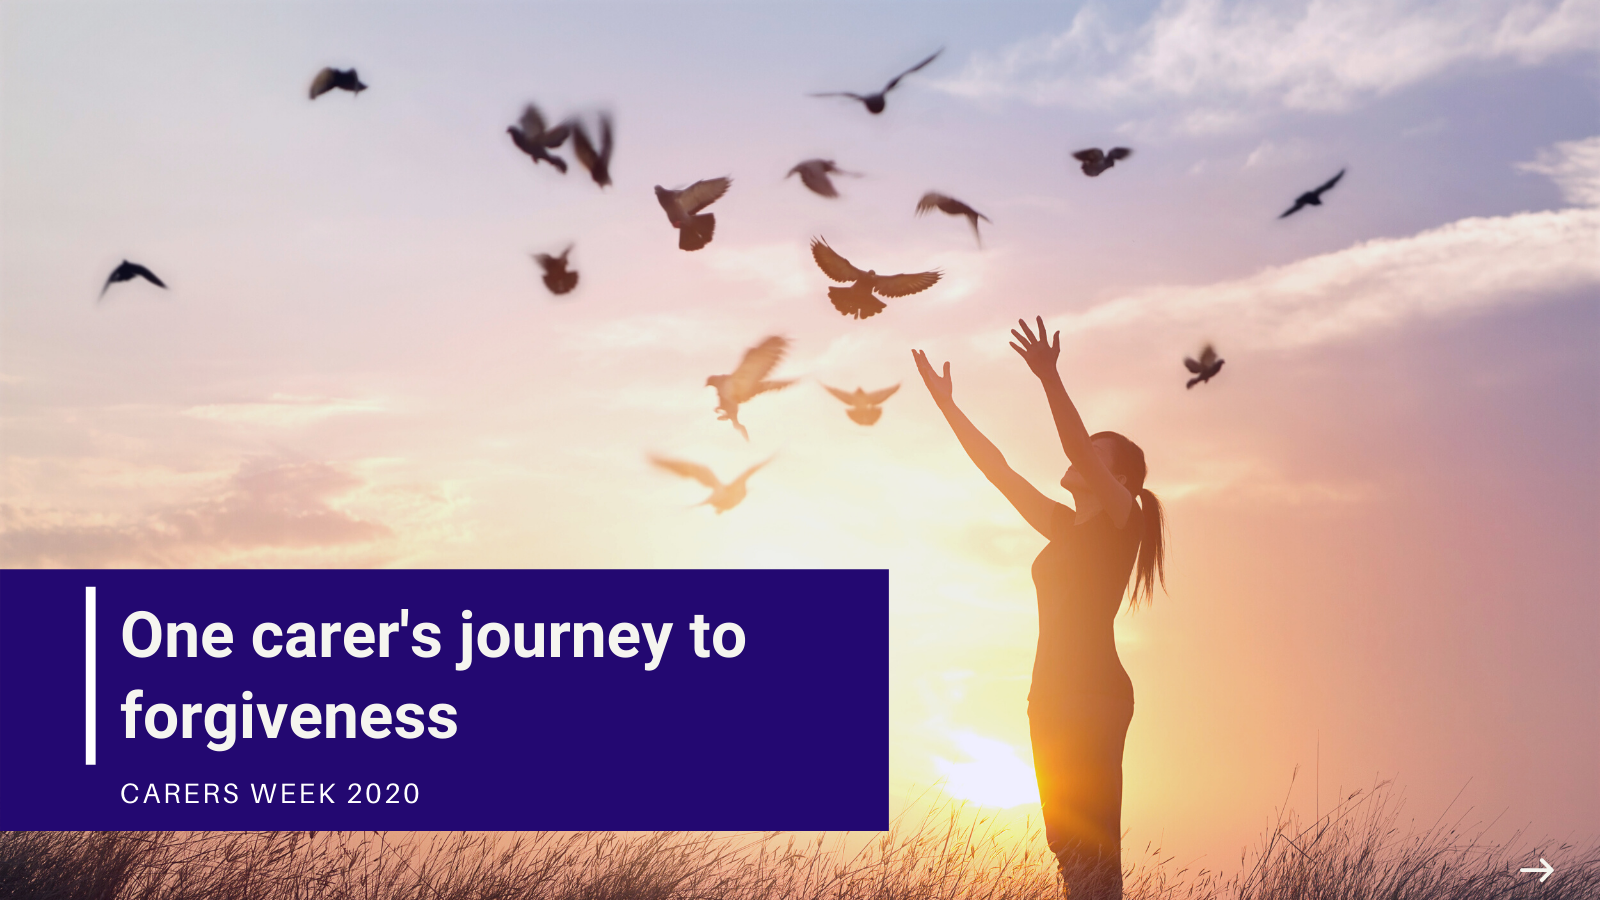 One carer's journey to forgiveness, Carers Week 2020